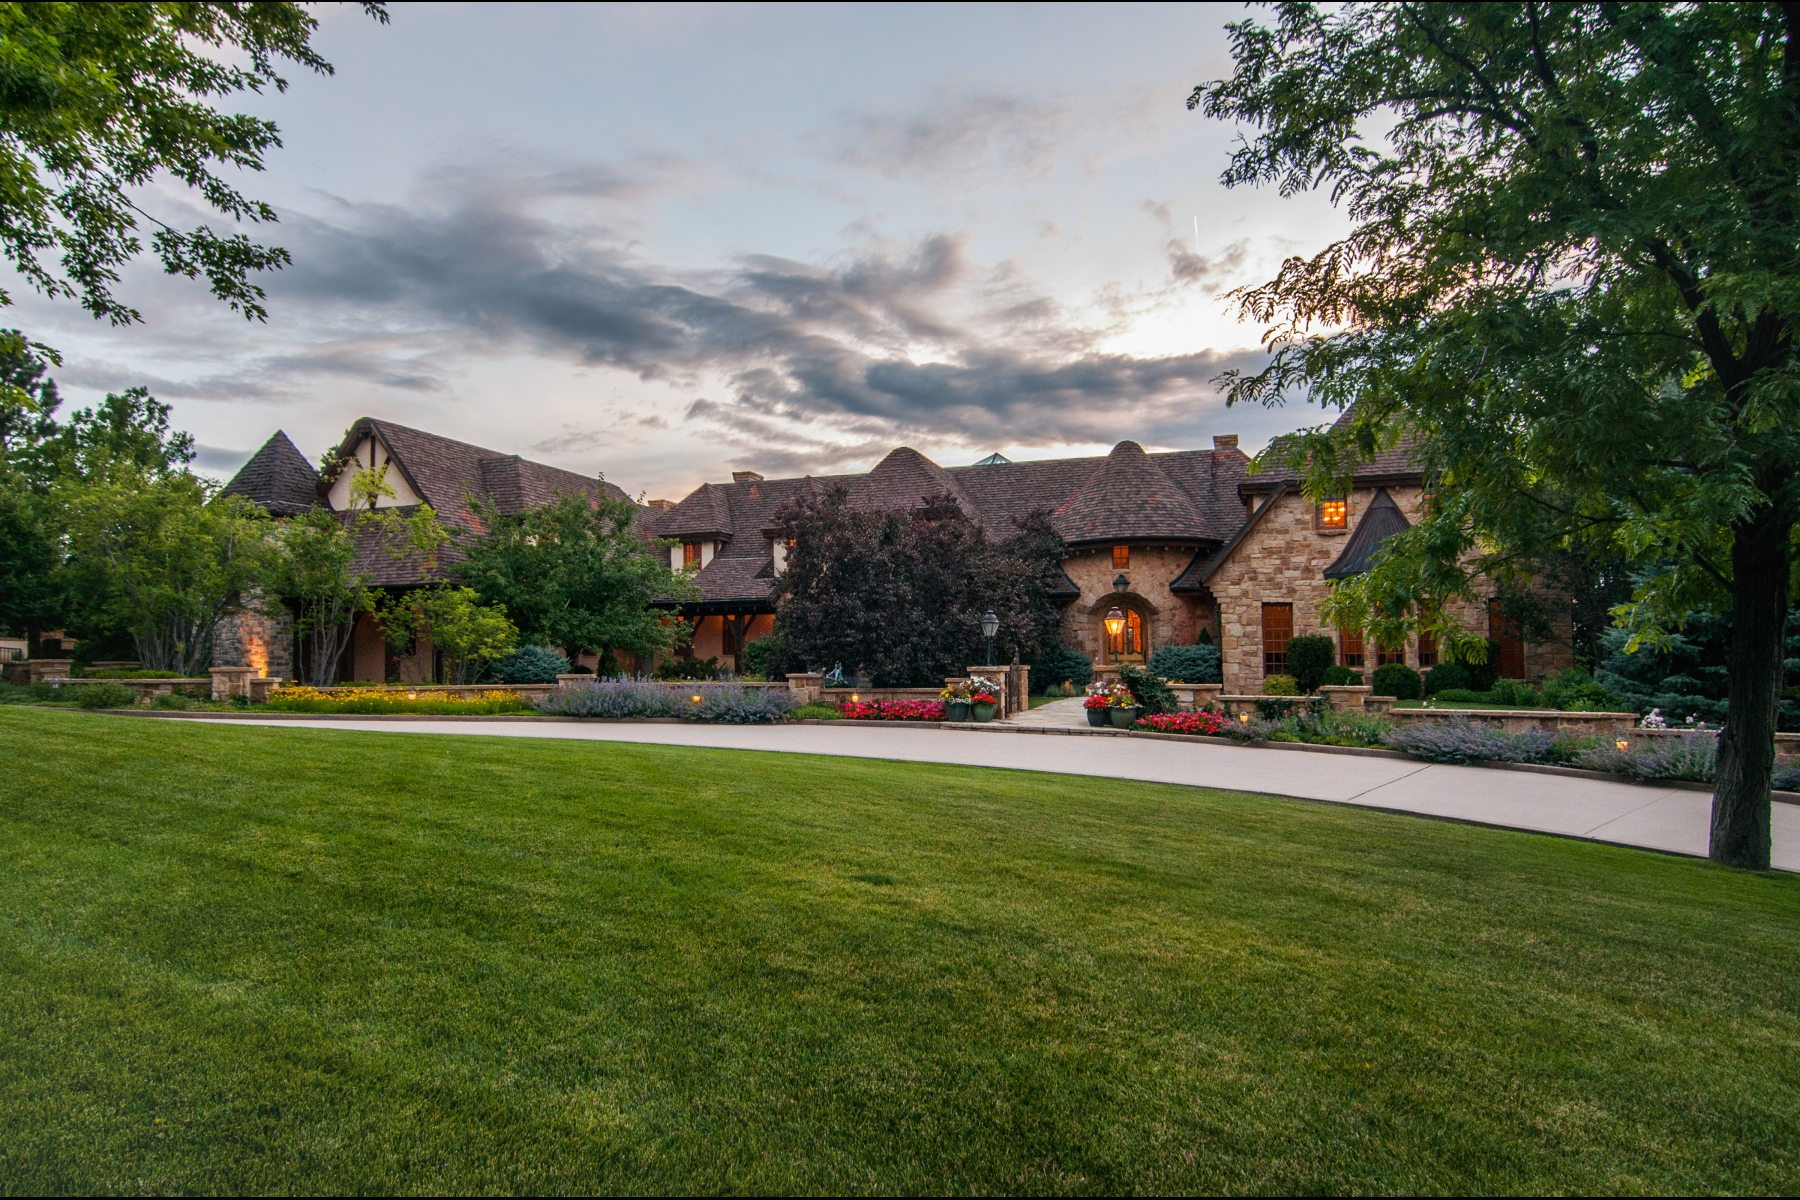 Single Family Home for Active at Old World craftsmanship and timeless design in Cherry Hills Village 4603 S. Denice Drive Cherry Hills Village, Colorado 80113 United States